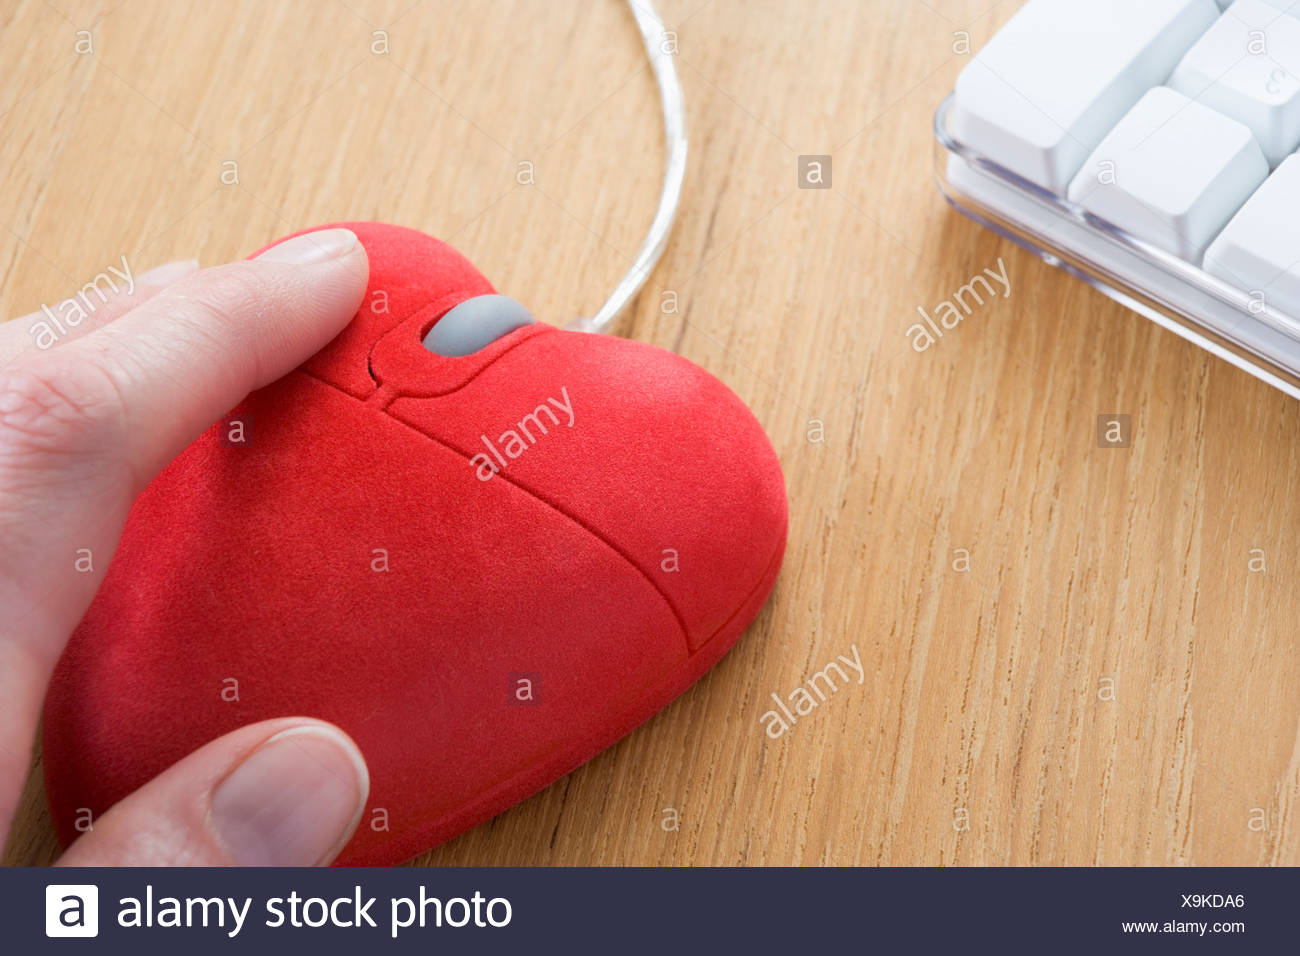 55ee302dbba Heart-Shaped Computer Mouse Stock Photo  281325358 - Alamy